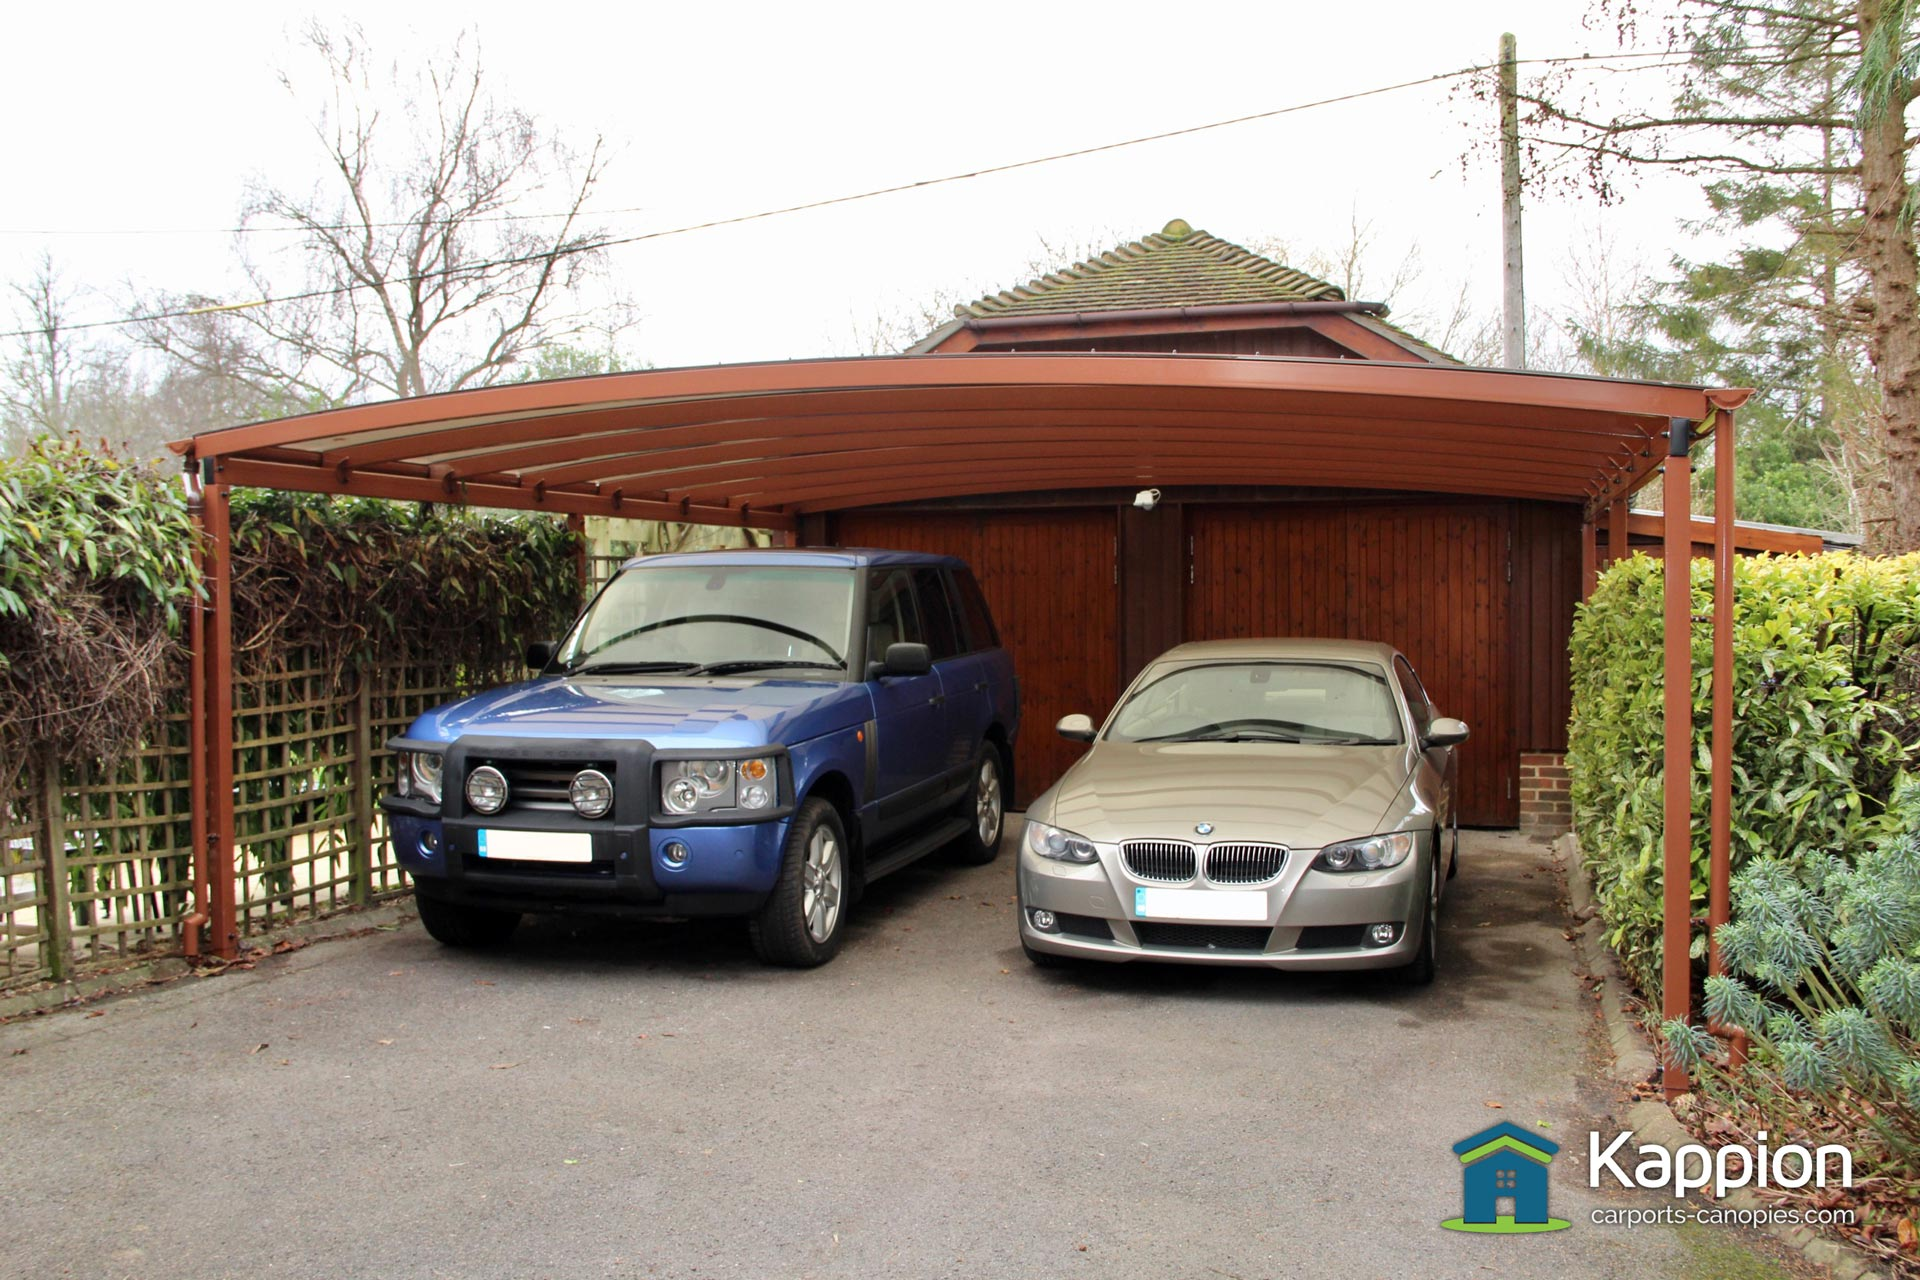 double-canopy-007 & Double Driveway Carport Installed in Salisbury | Kappion Carports